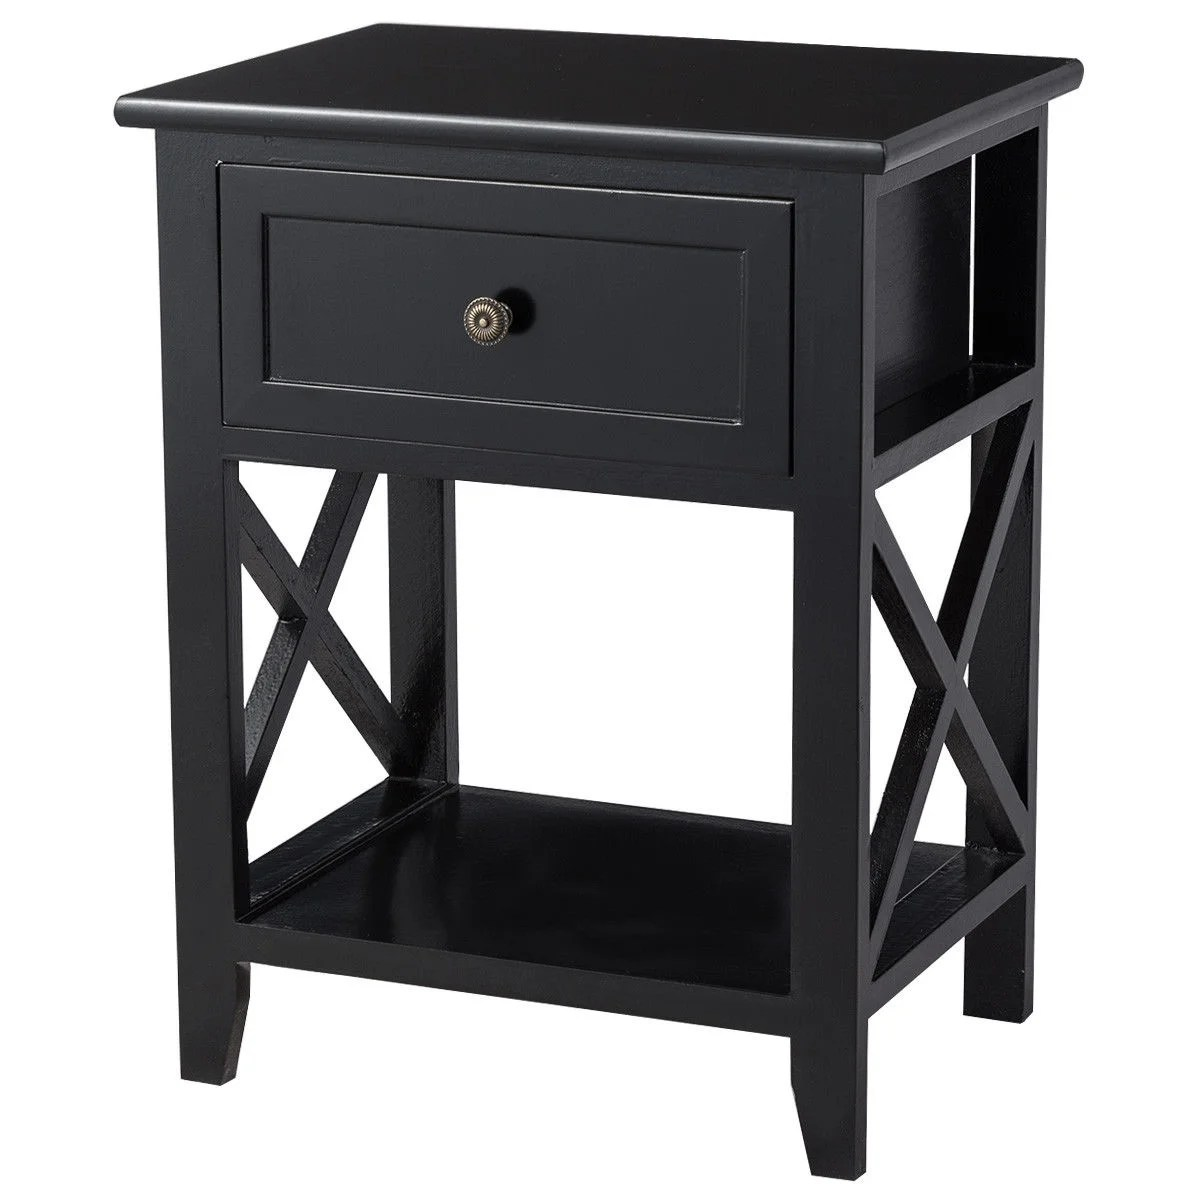 Black End Tables With Drawer Costway End Bedside Table Nightstand Drawer Storage Room Decor W Bottom Shelf Black